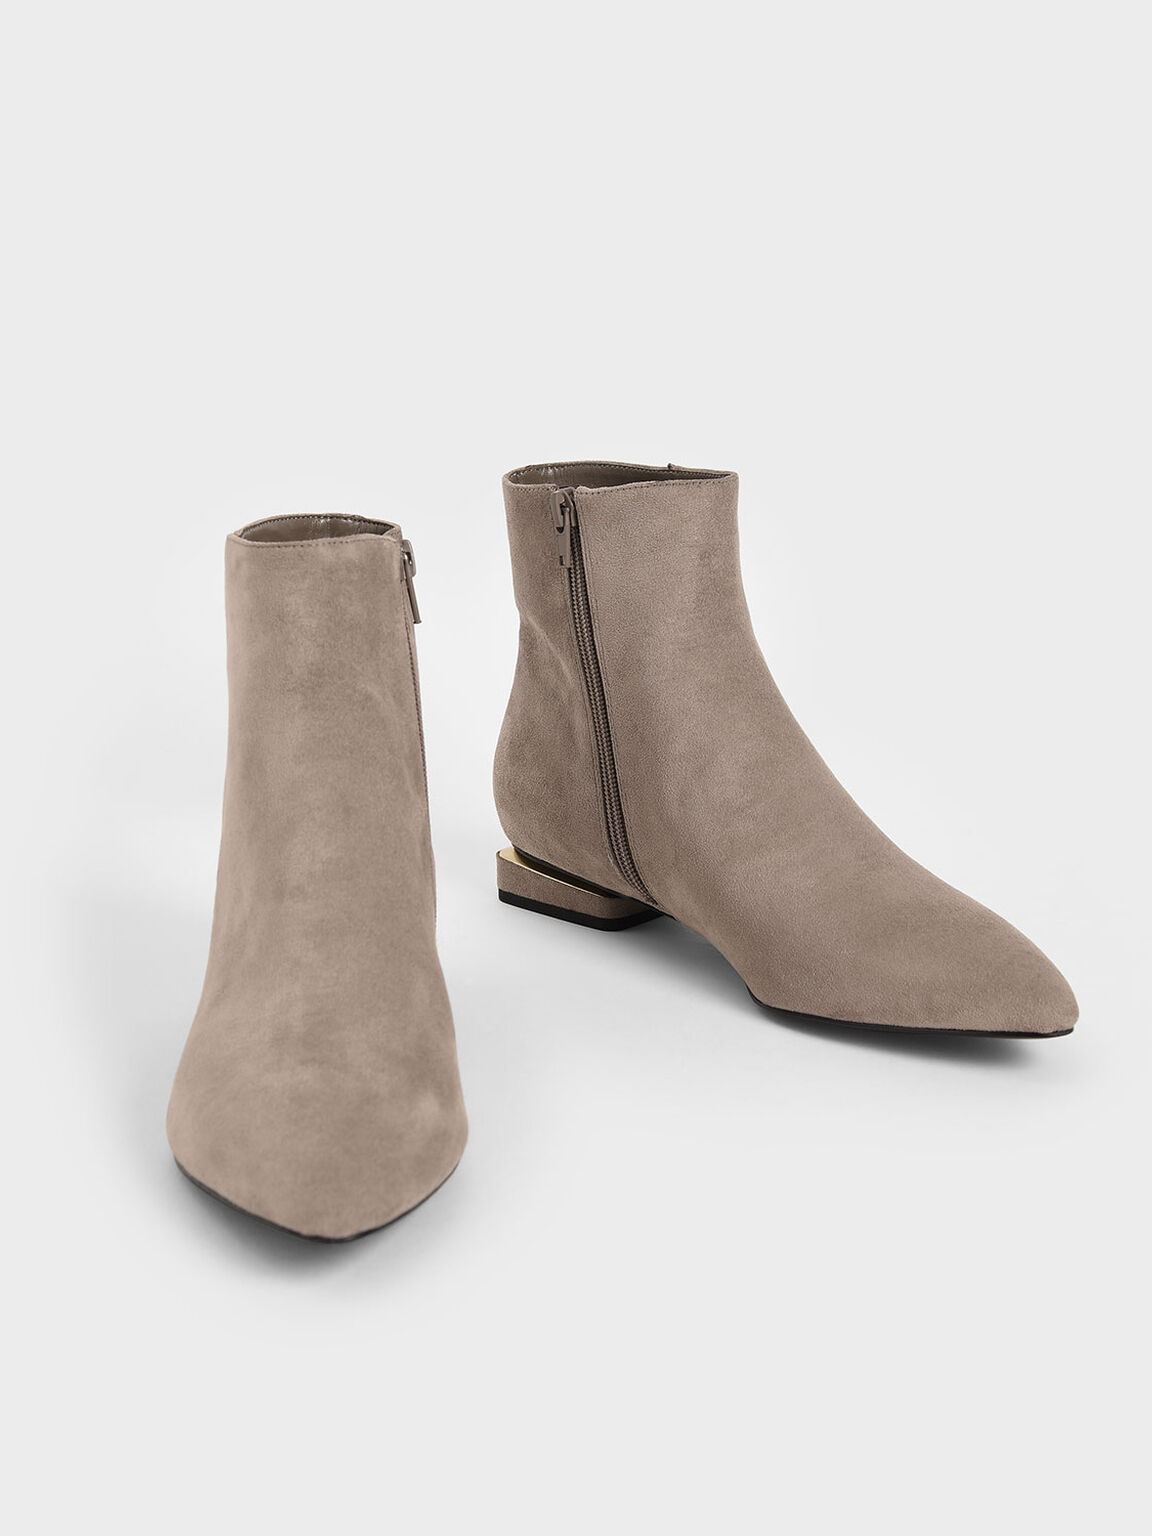 Textured Metallic Accent Ankle Boots, Taupe, hi-res